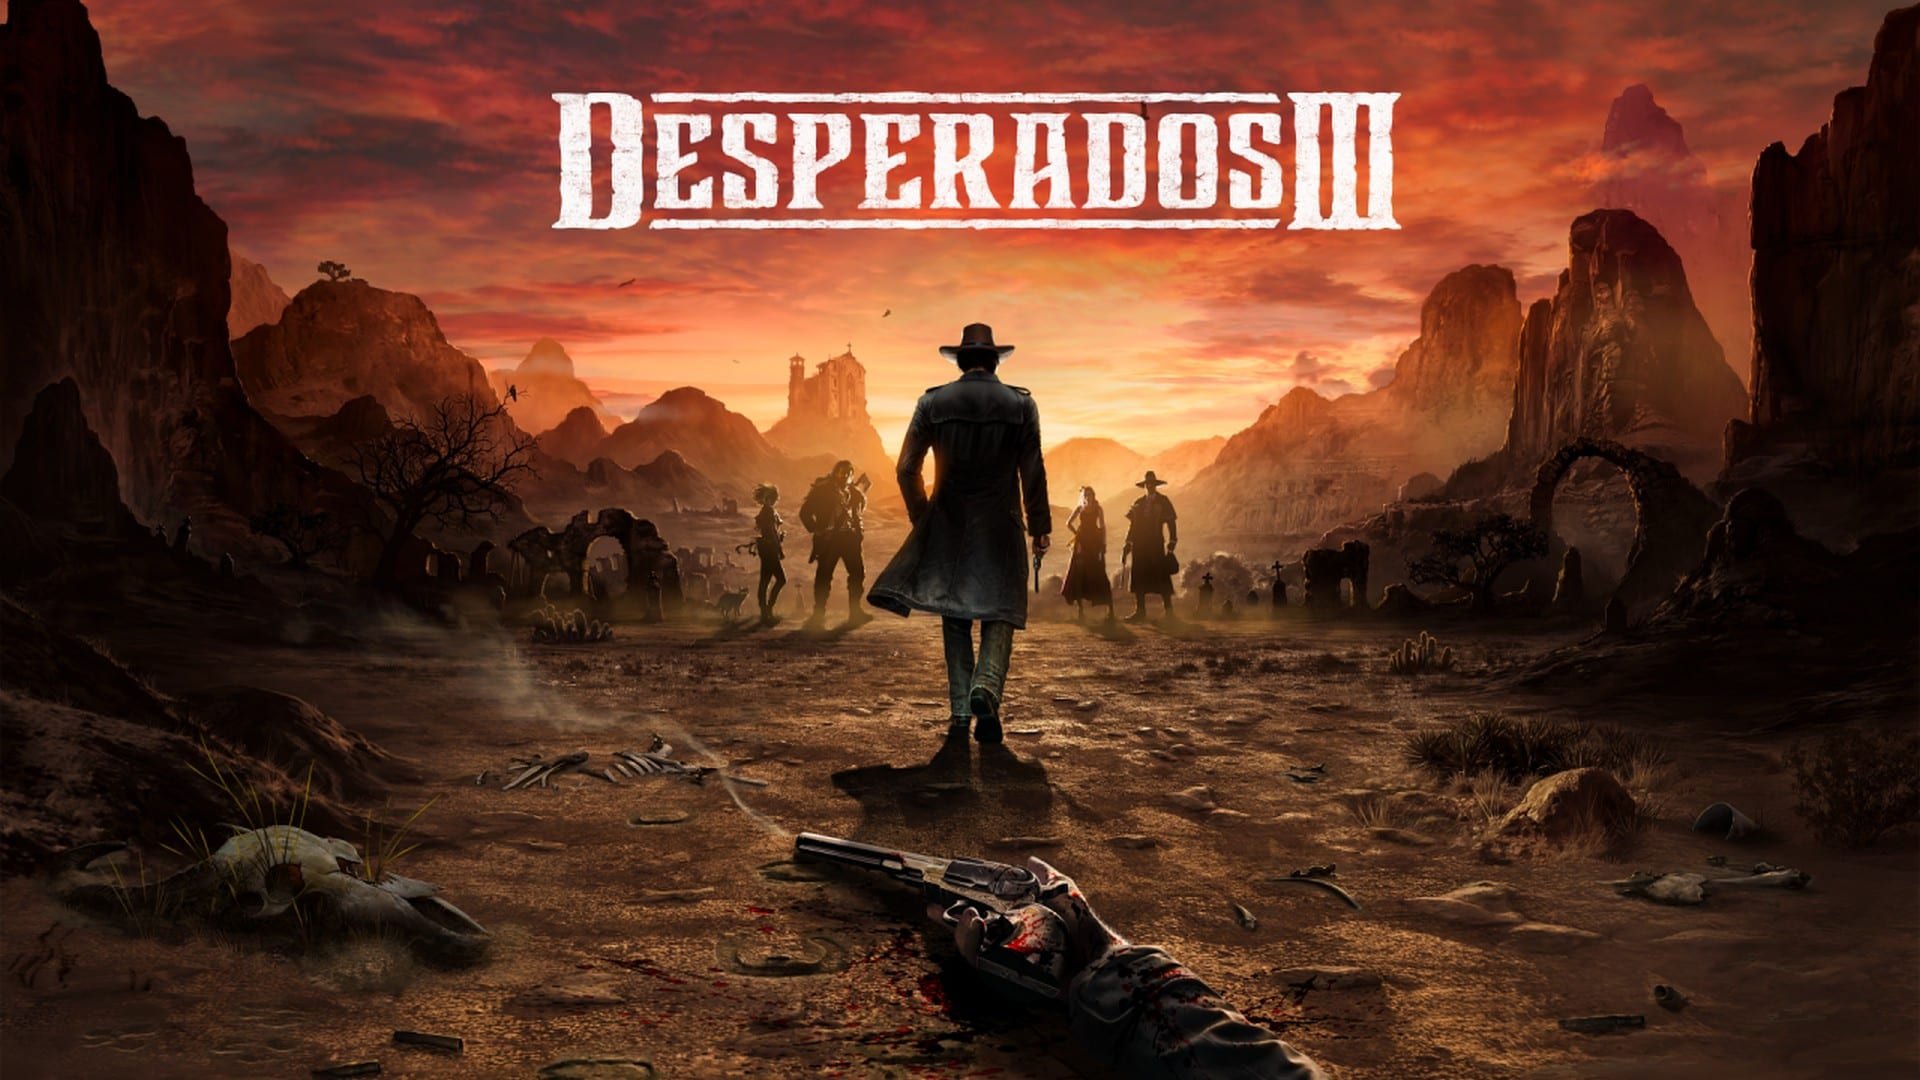 Catch Em All Desperados Iii Is Getting A 5 Figurine Collector S Edition With Music Box And Season Pass Mkau Gaming